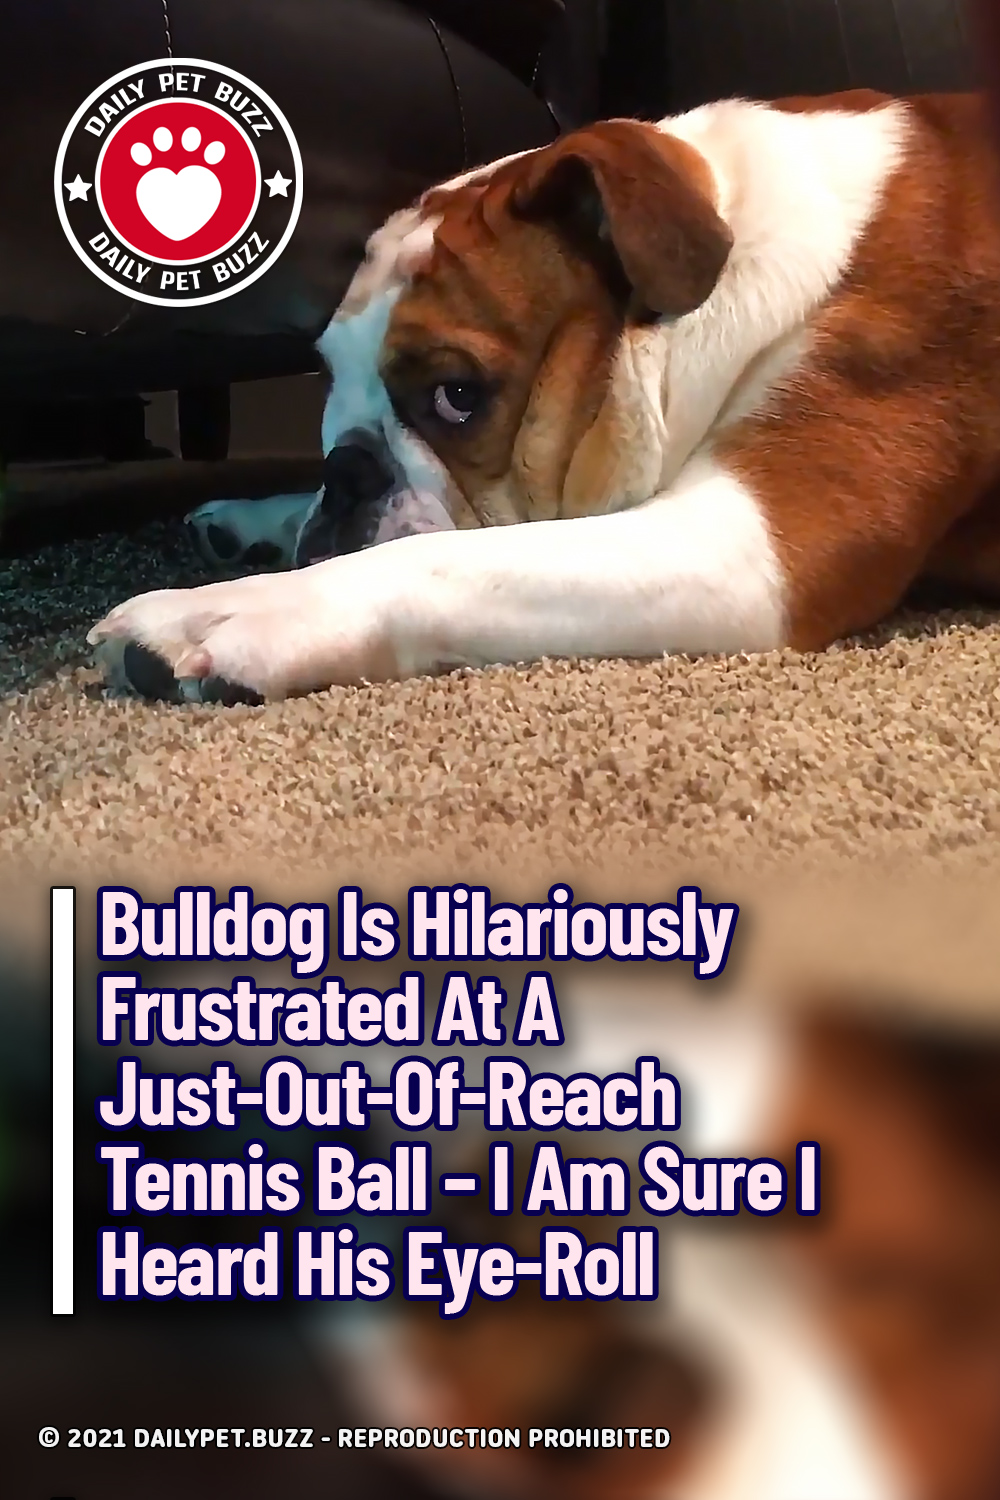 Bulldog Is Hilariously Frustrated At A Just-Out-Of-Reach Tennis Ball – I Am Sure I Heard His Eye-Roll